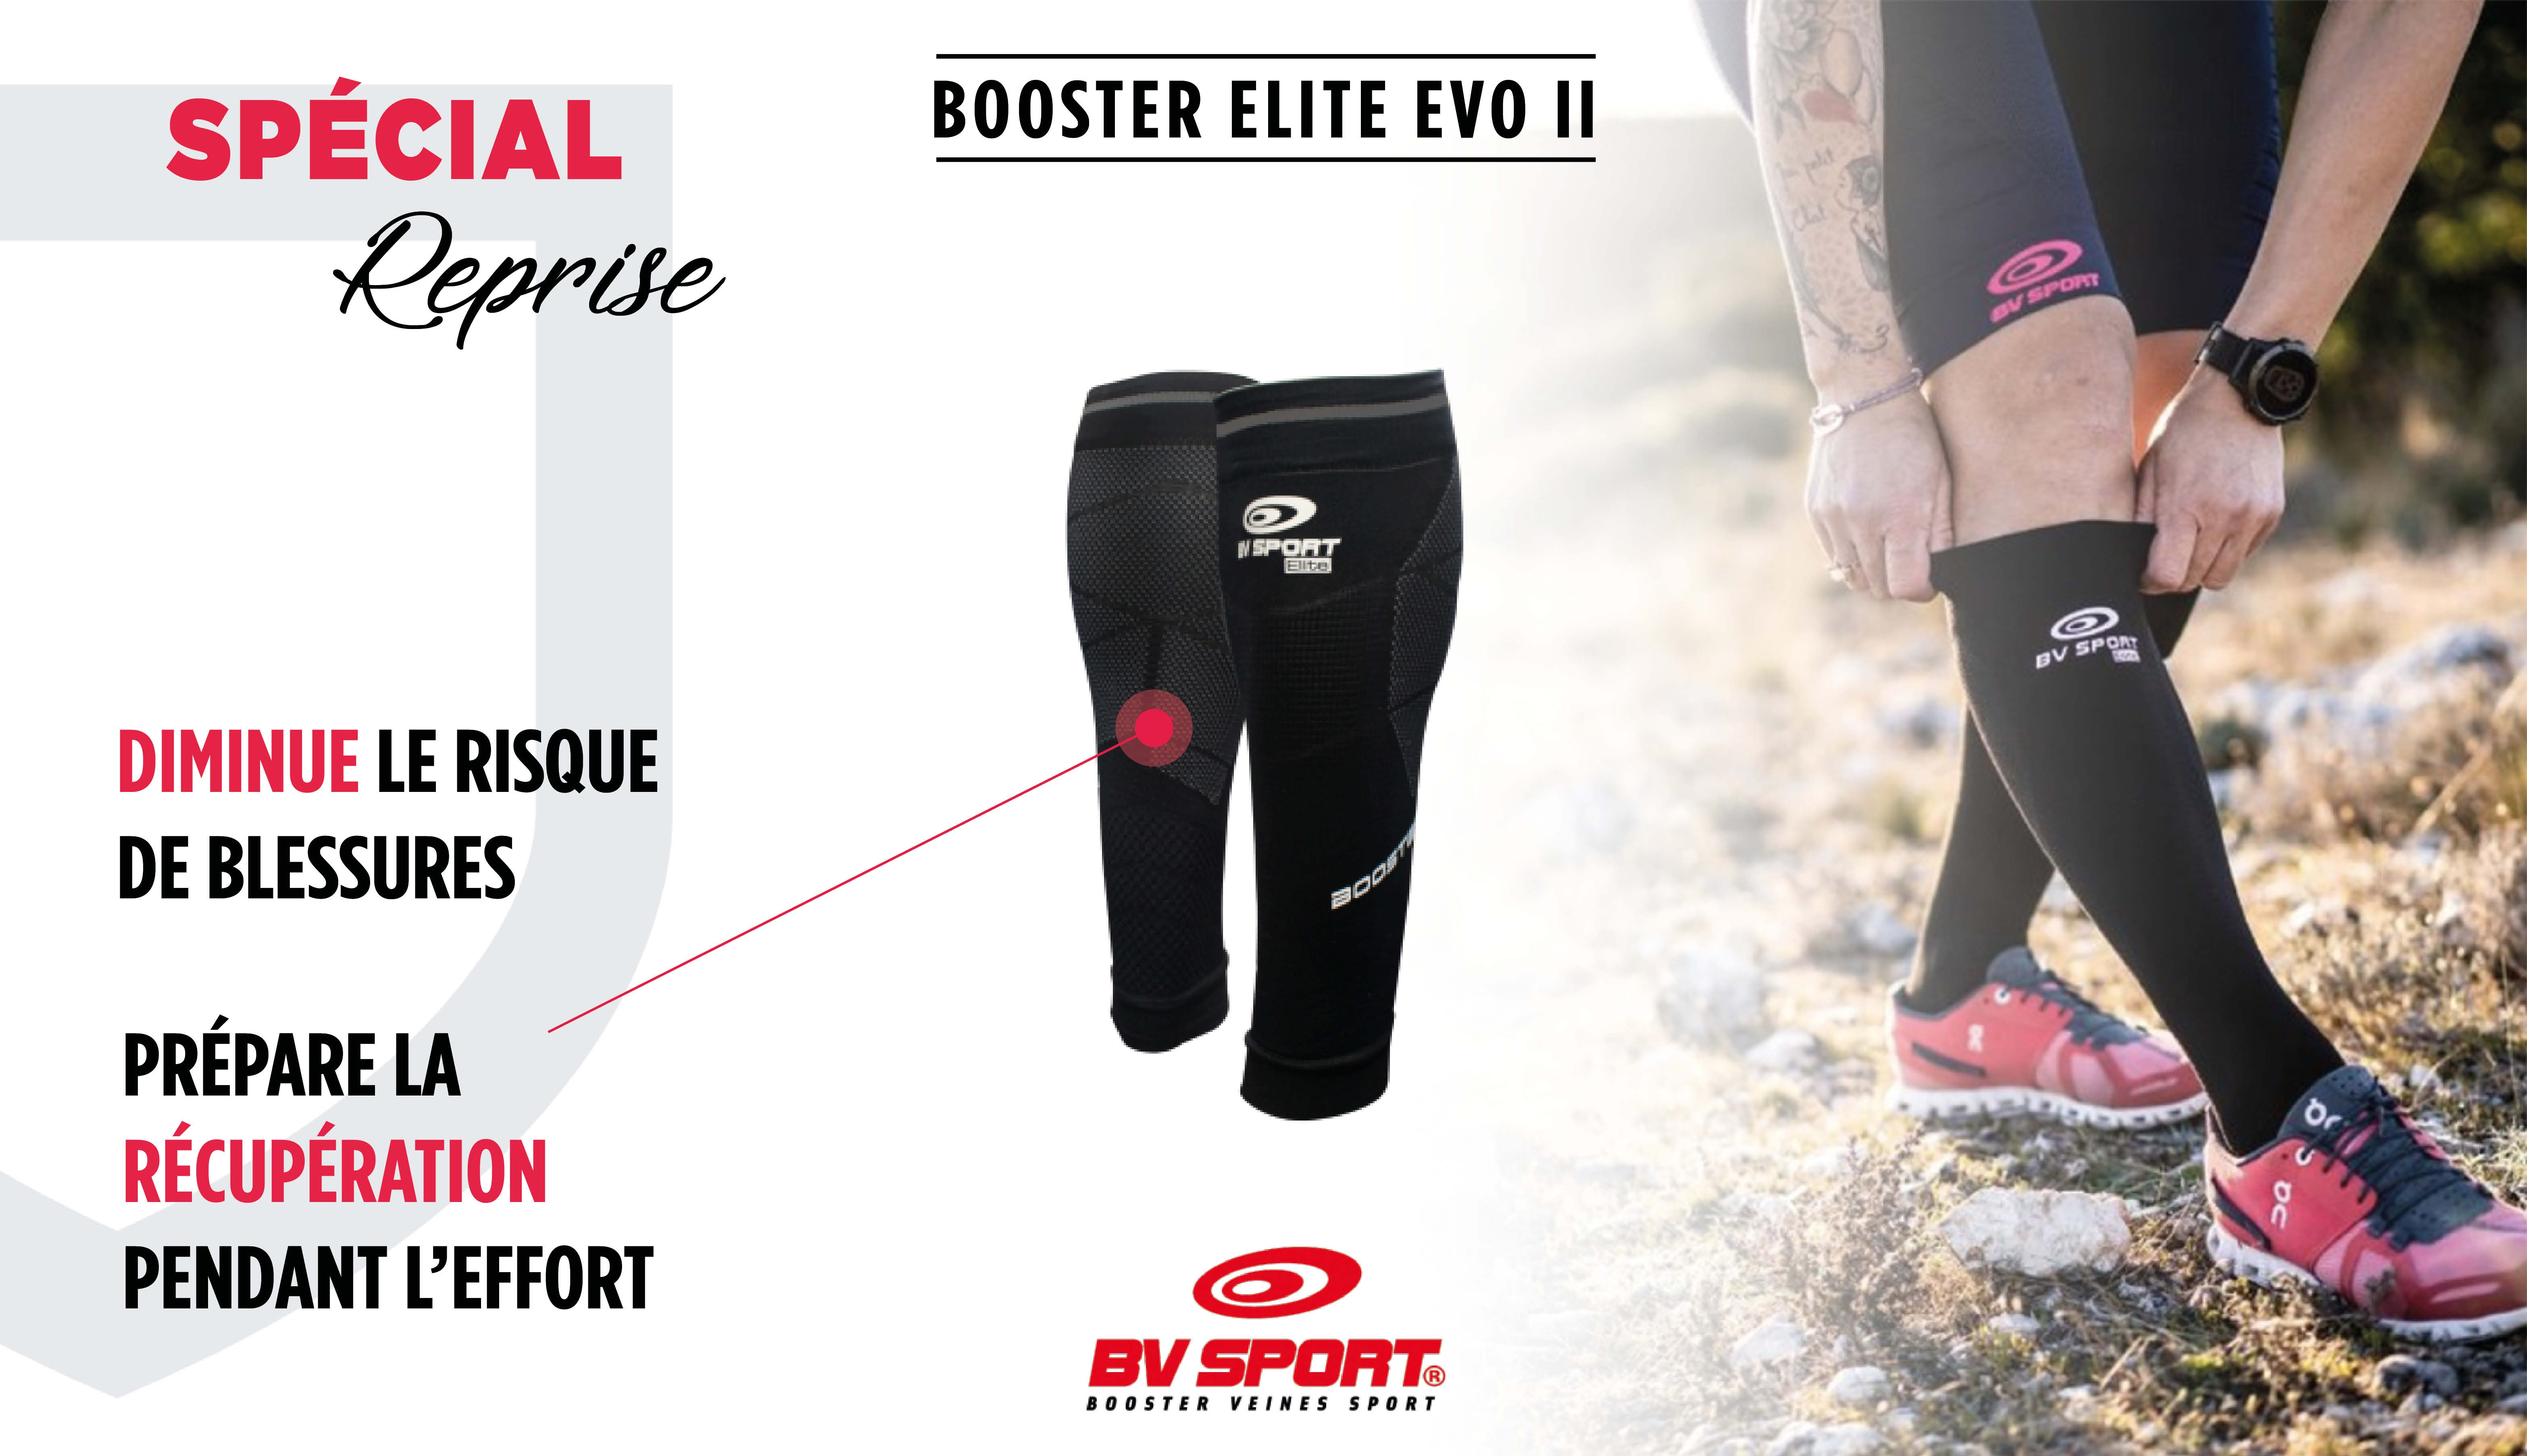 Booster Elite EVO II